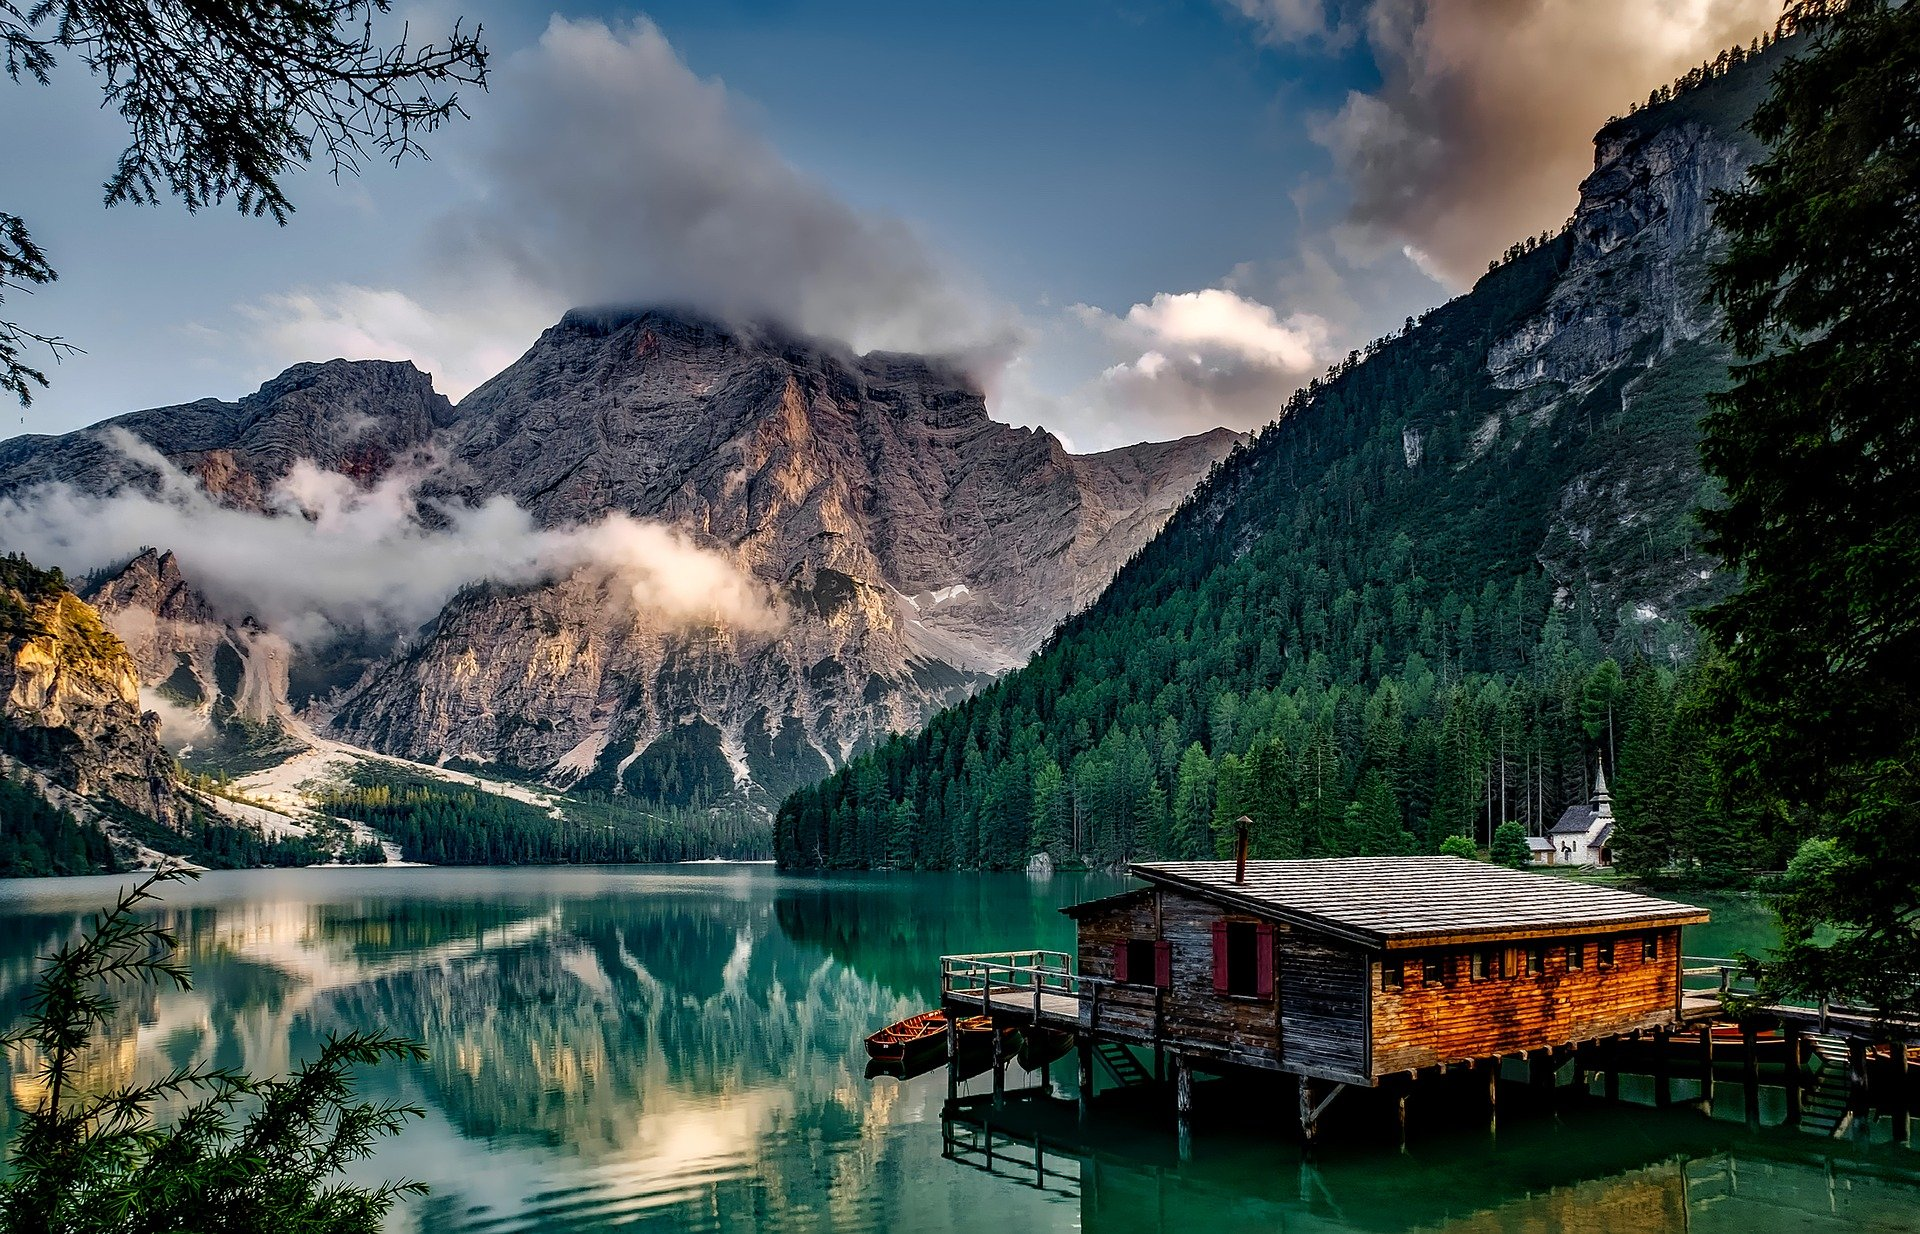 Wooden house on a lake surrounded by mountains